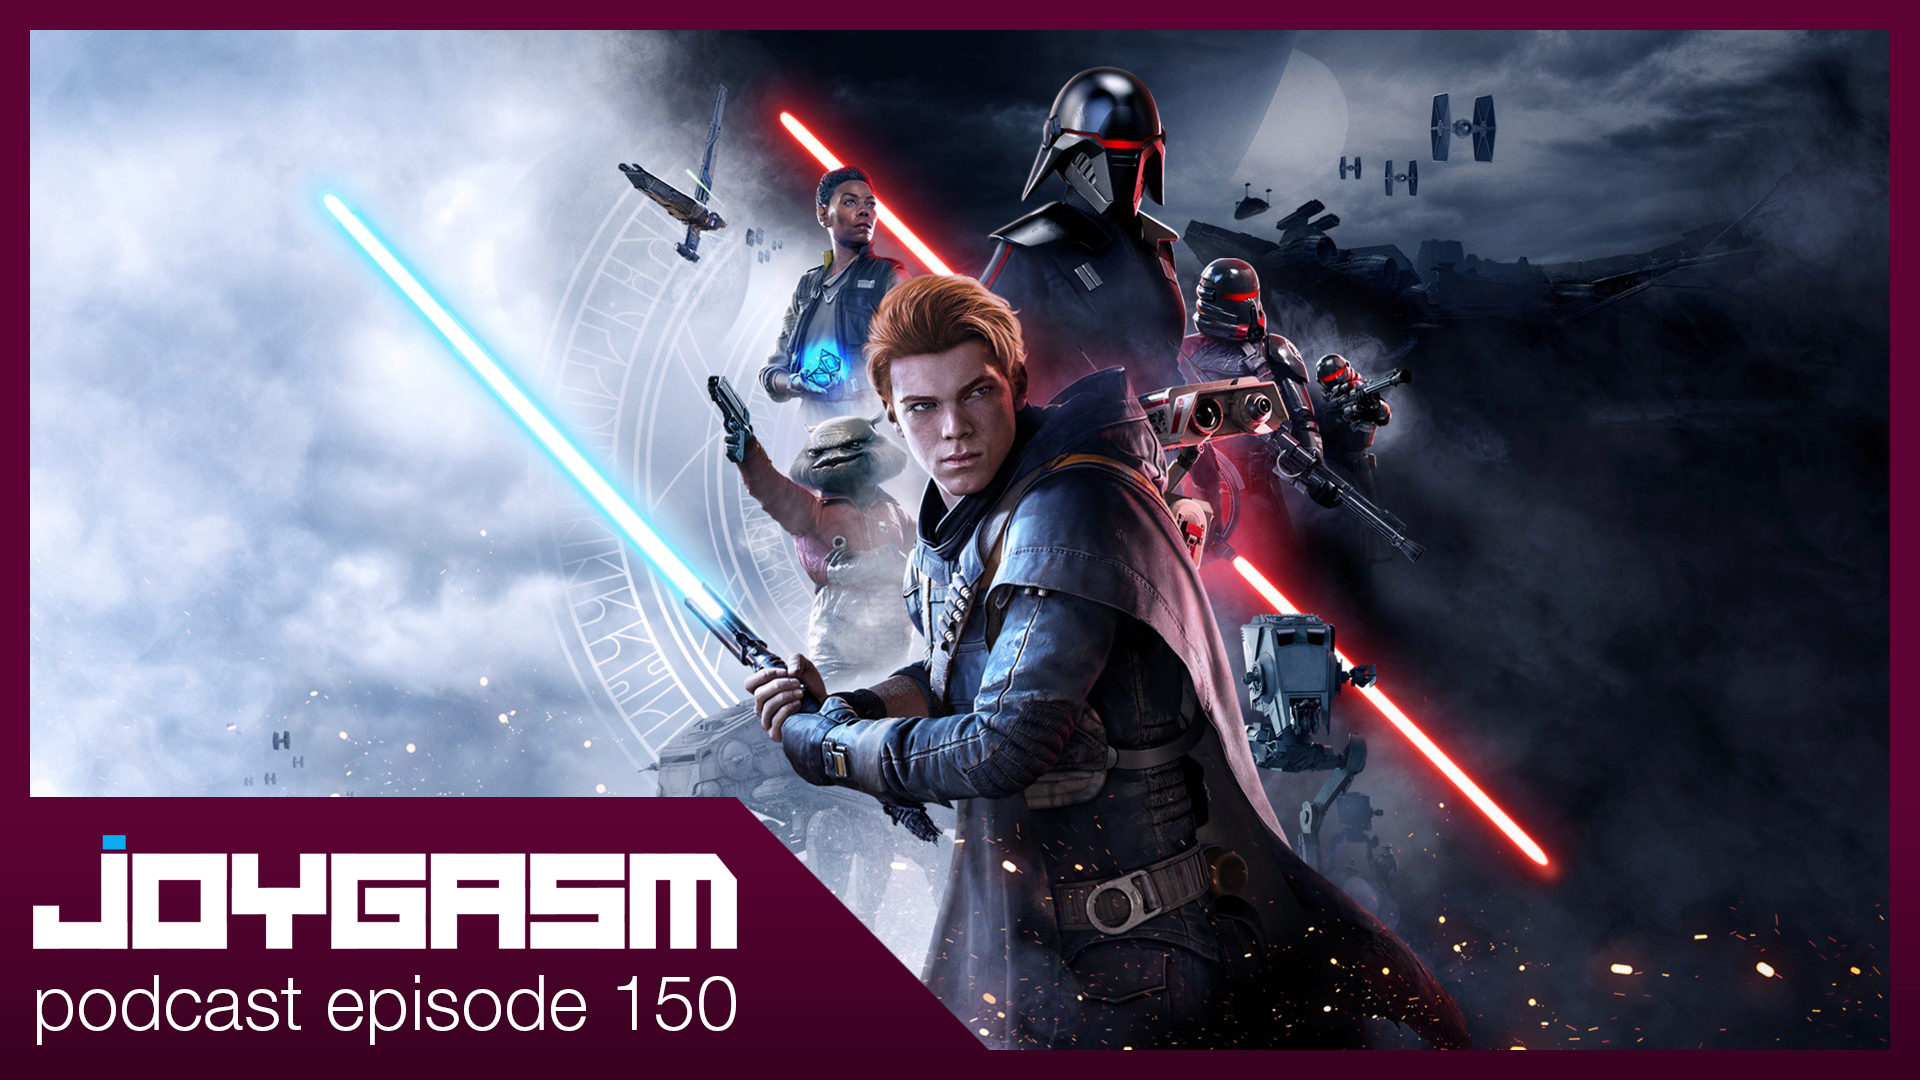 Ep. 150: Star Wars Jedi: Fallen Order & More